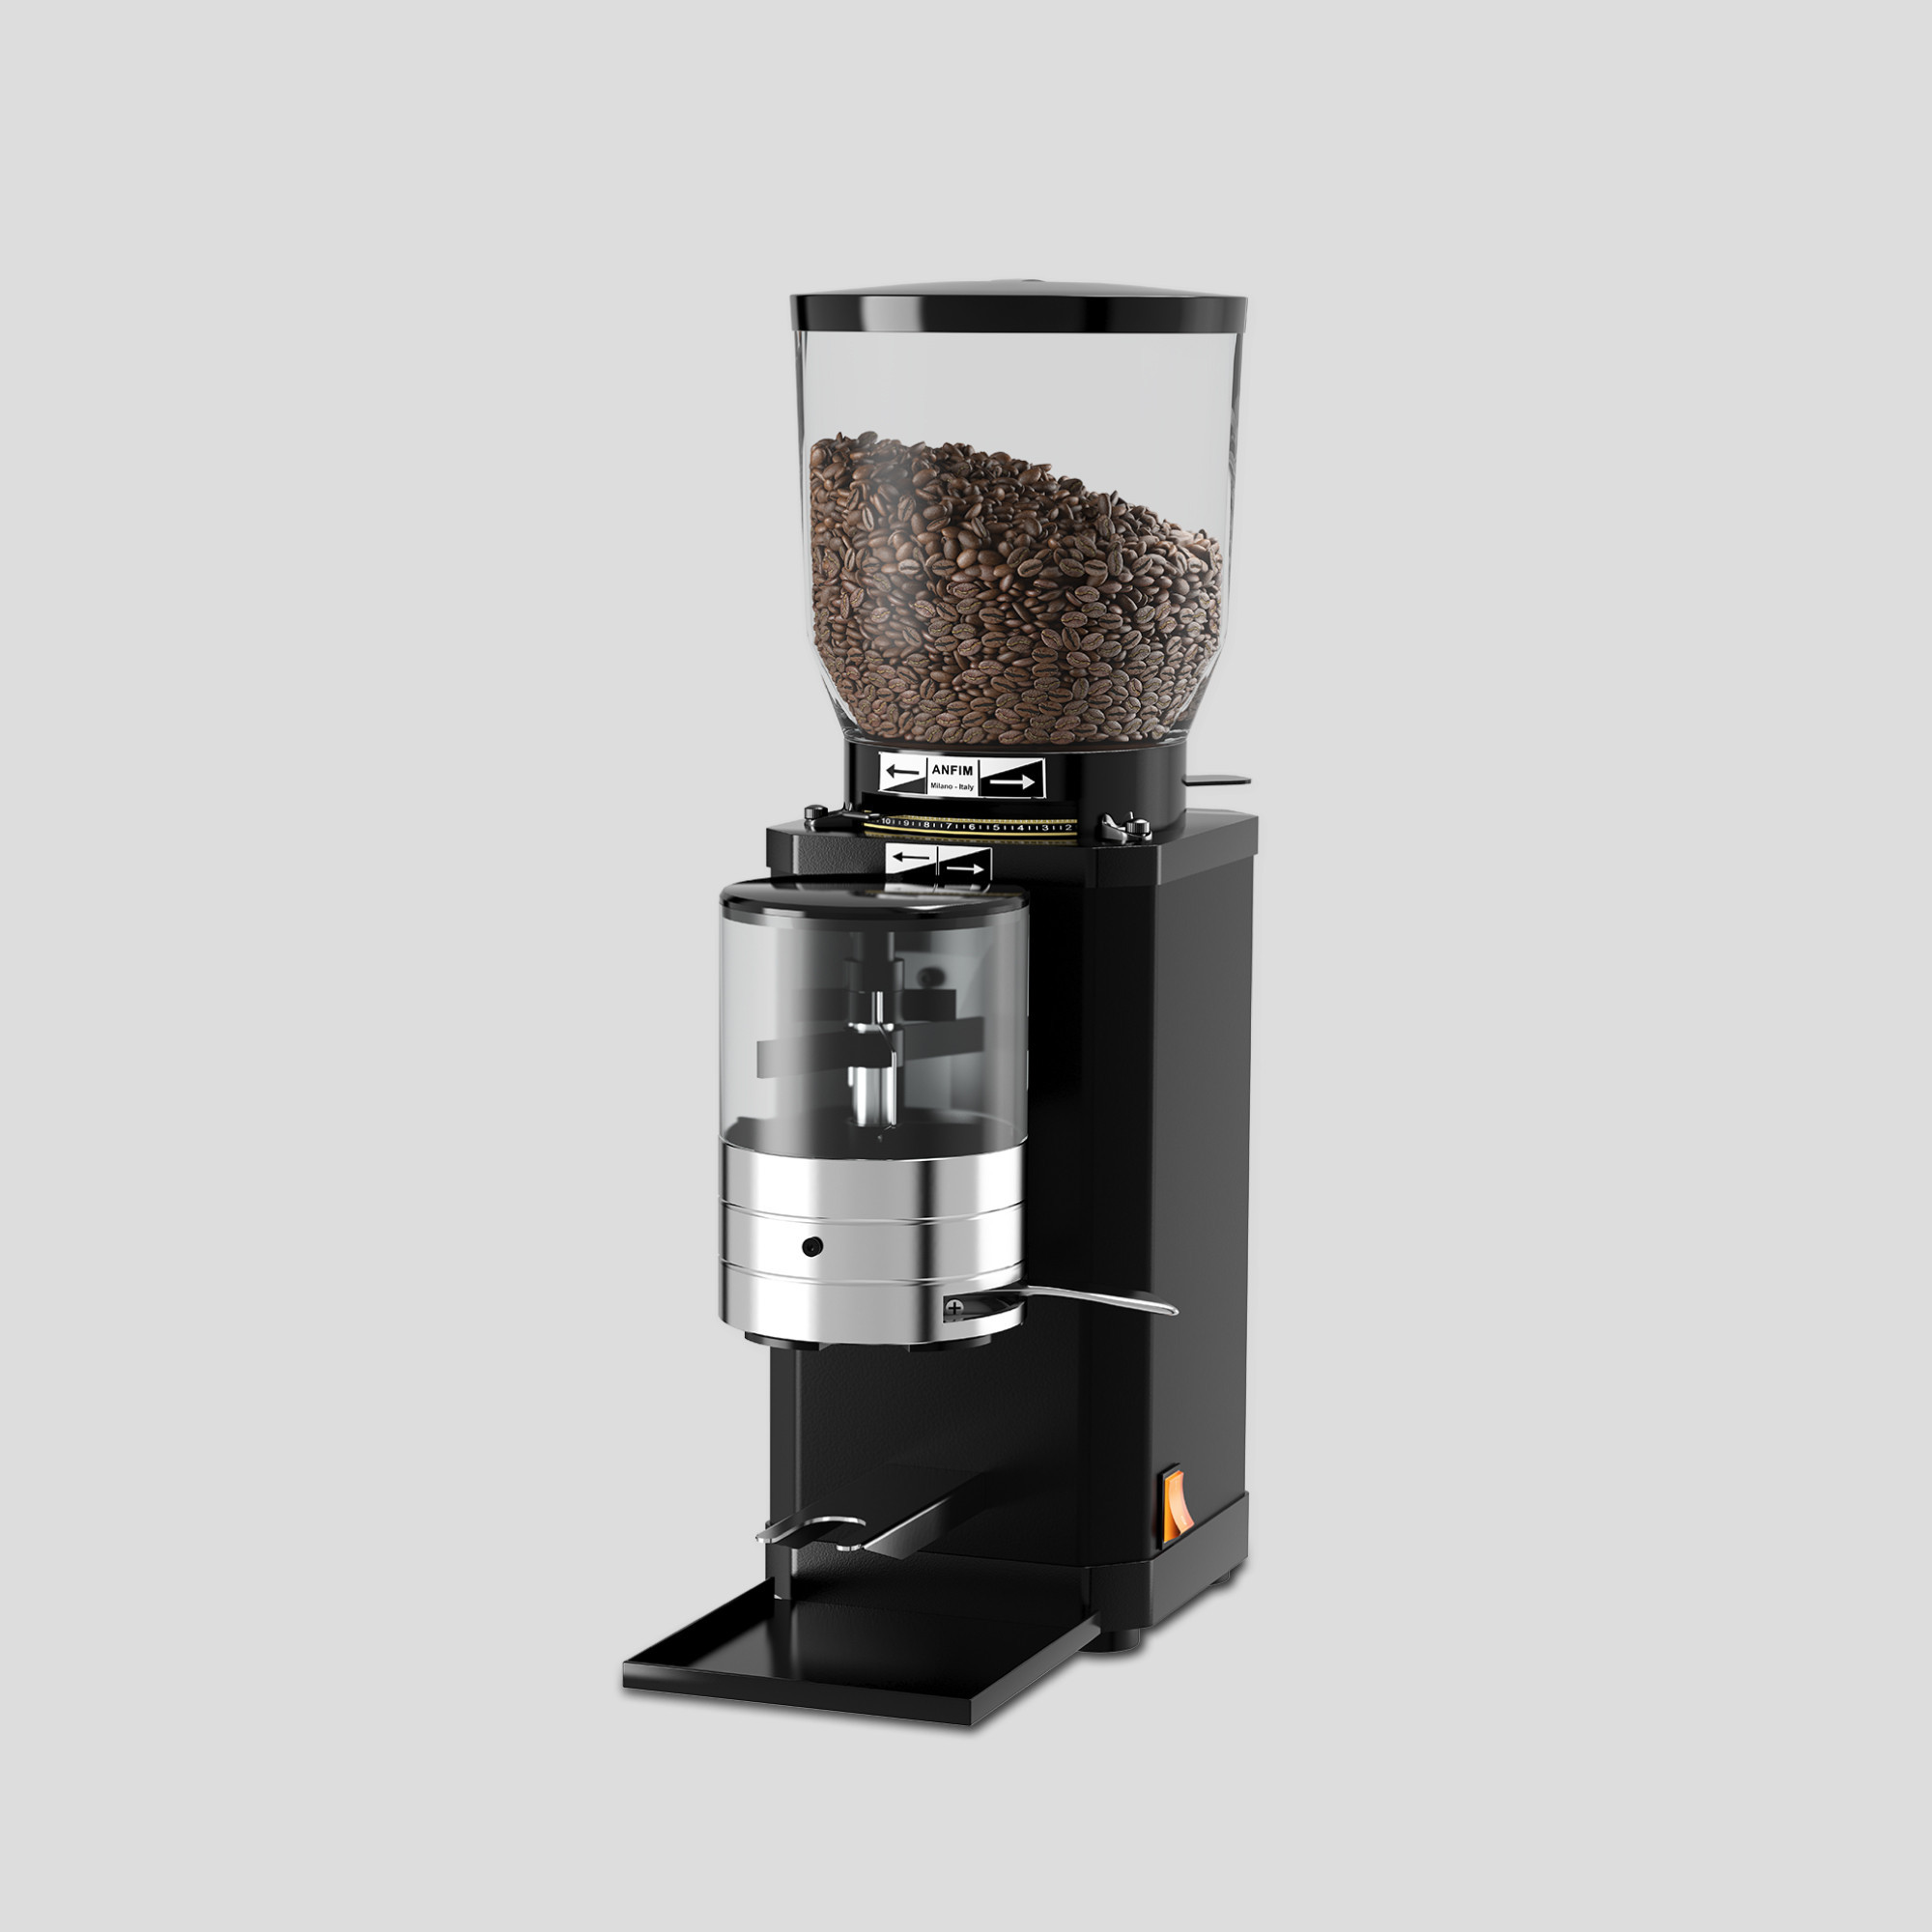 [ANFIM] Coffee Grinders_Super Caimano_수동